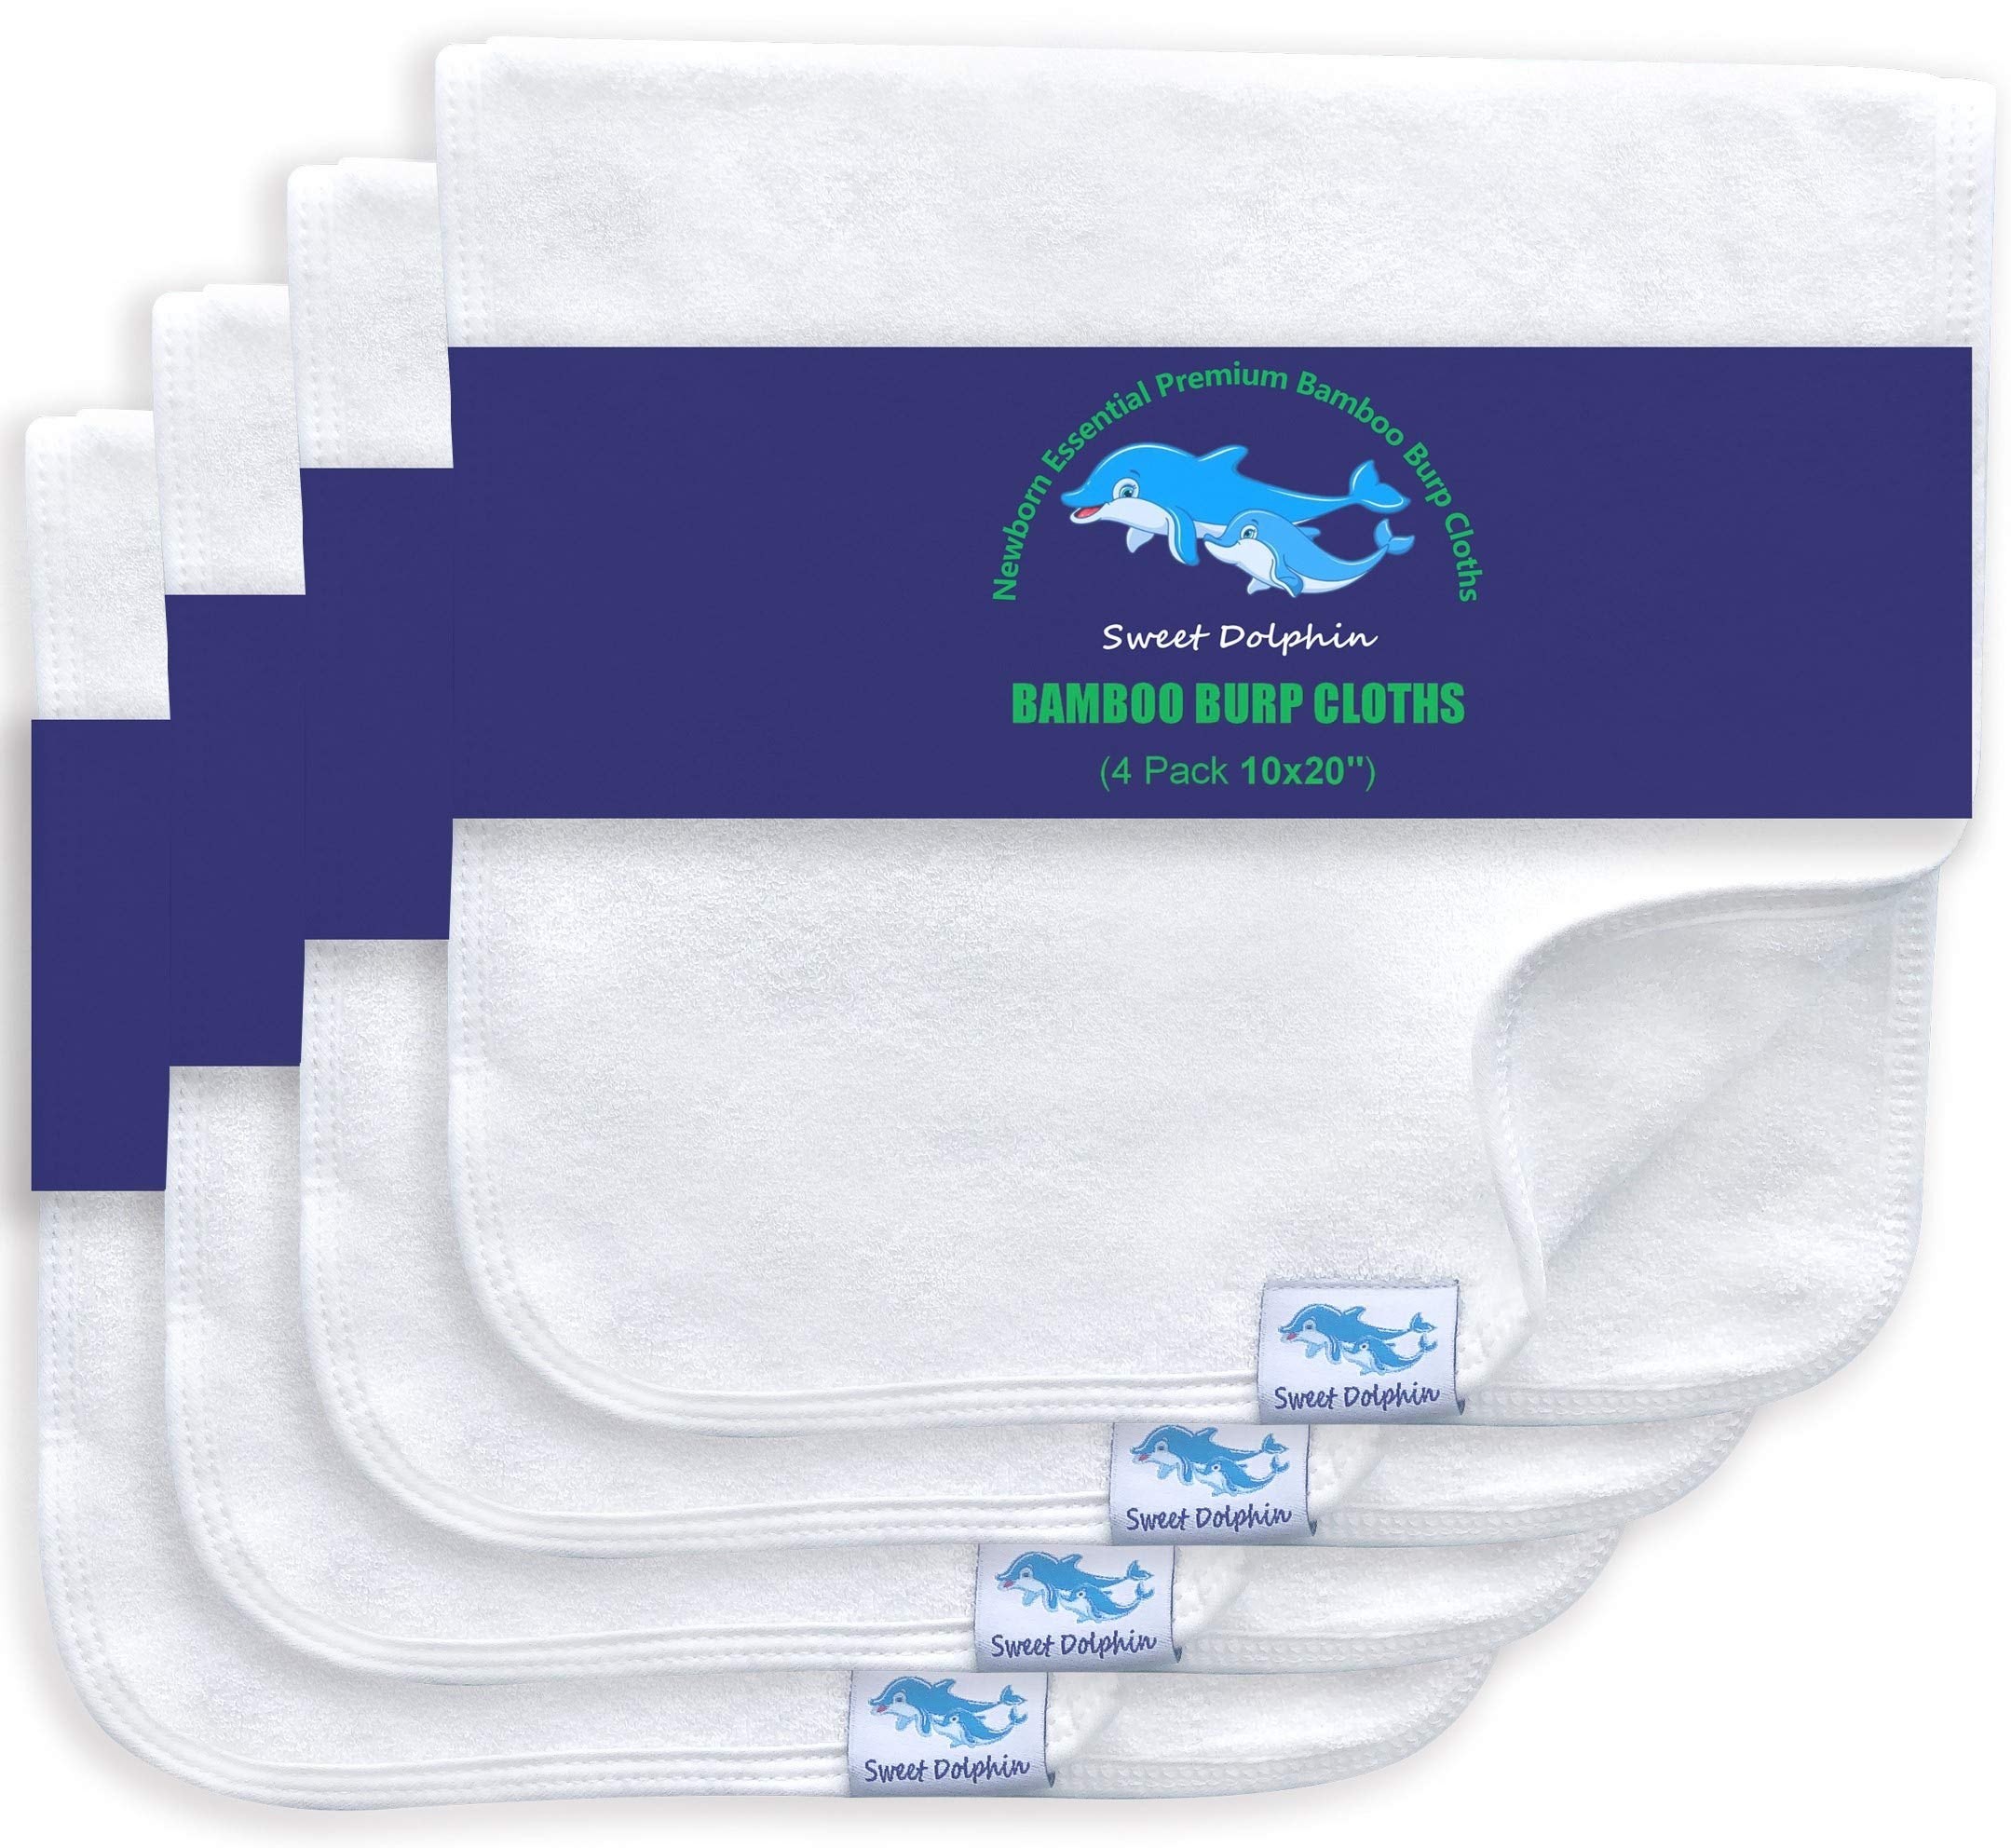 Organic Bamboo Burp Cloths 4 Pack Large 100% Bamboo Washcloths Double Layered Burping Cloths - Extra Absorbent and Soft Hand Washcloths - Milk Spit Up Rags - Burpy Bib for Unisex (White)